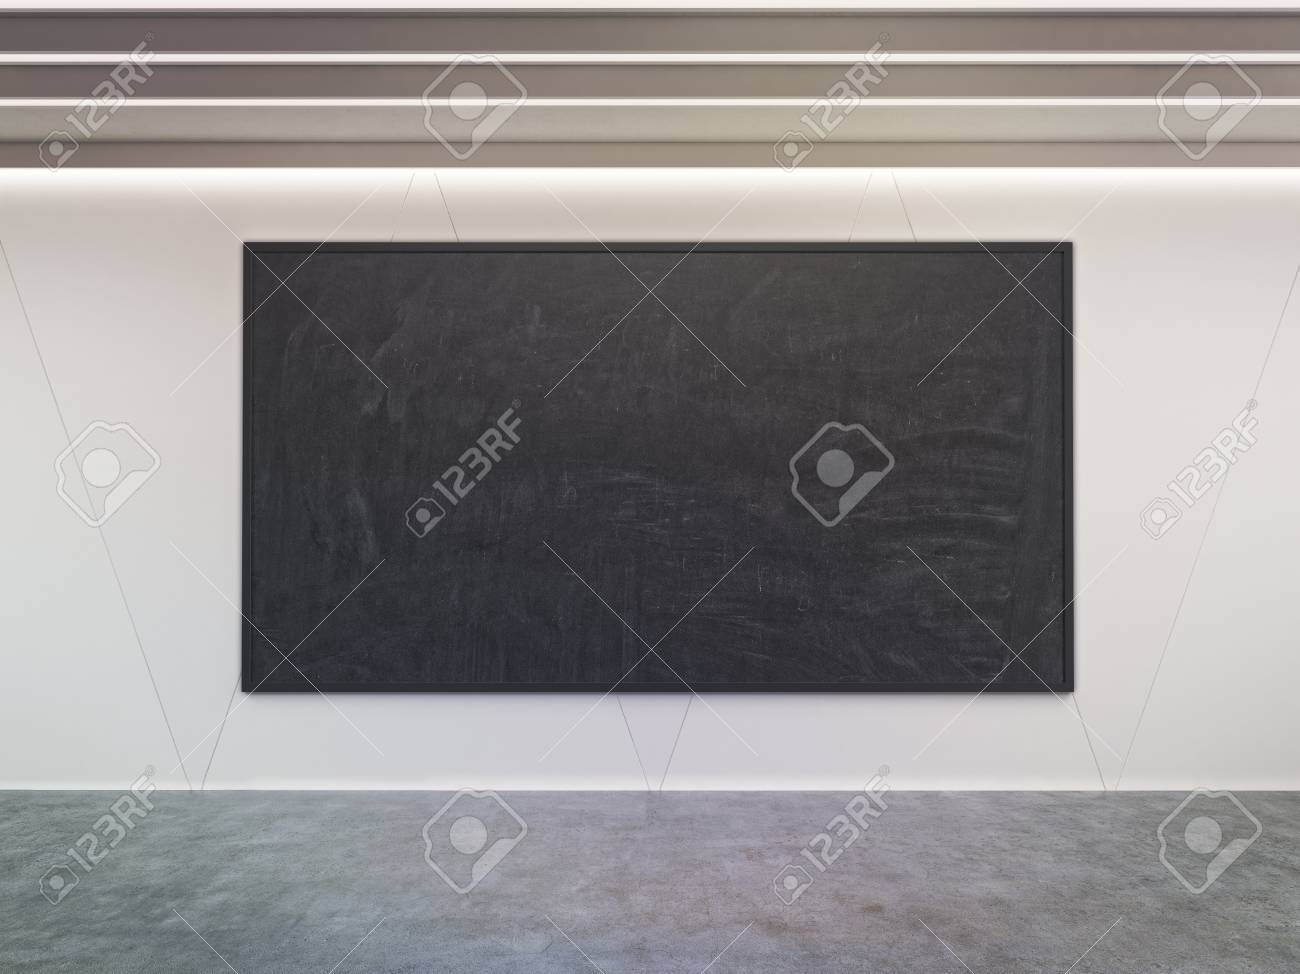 Large Blackboard Hanging In Room With Concrete Walls And Floor